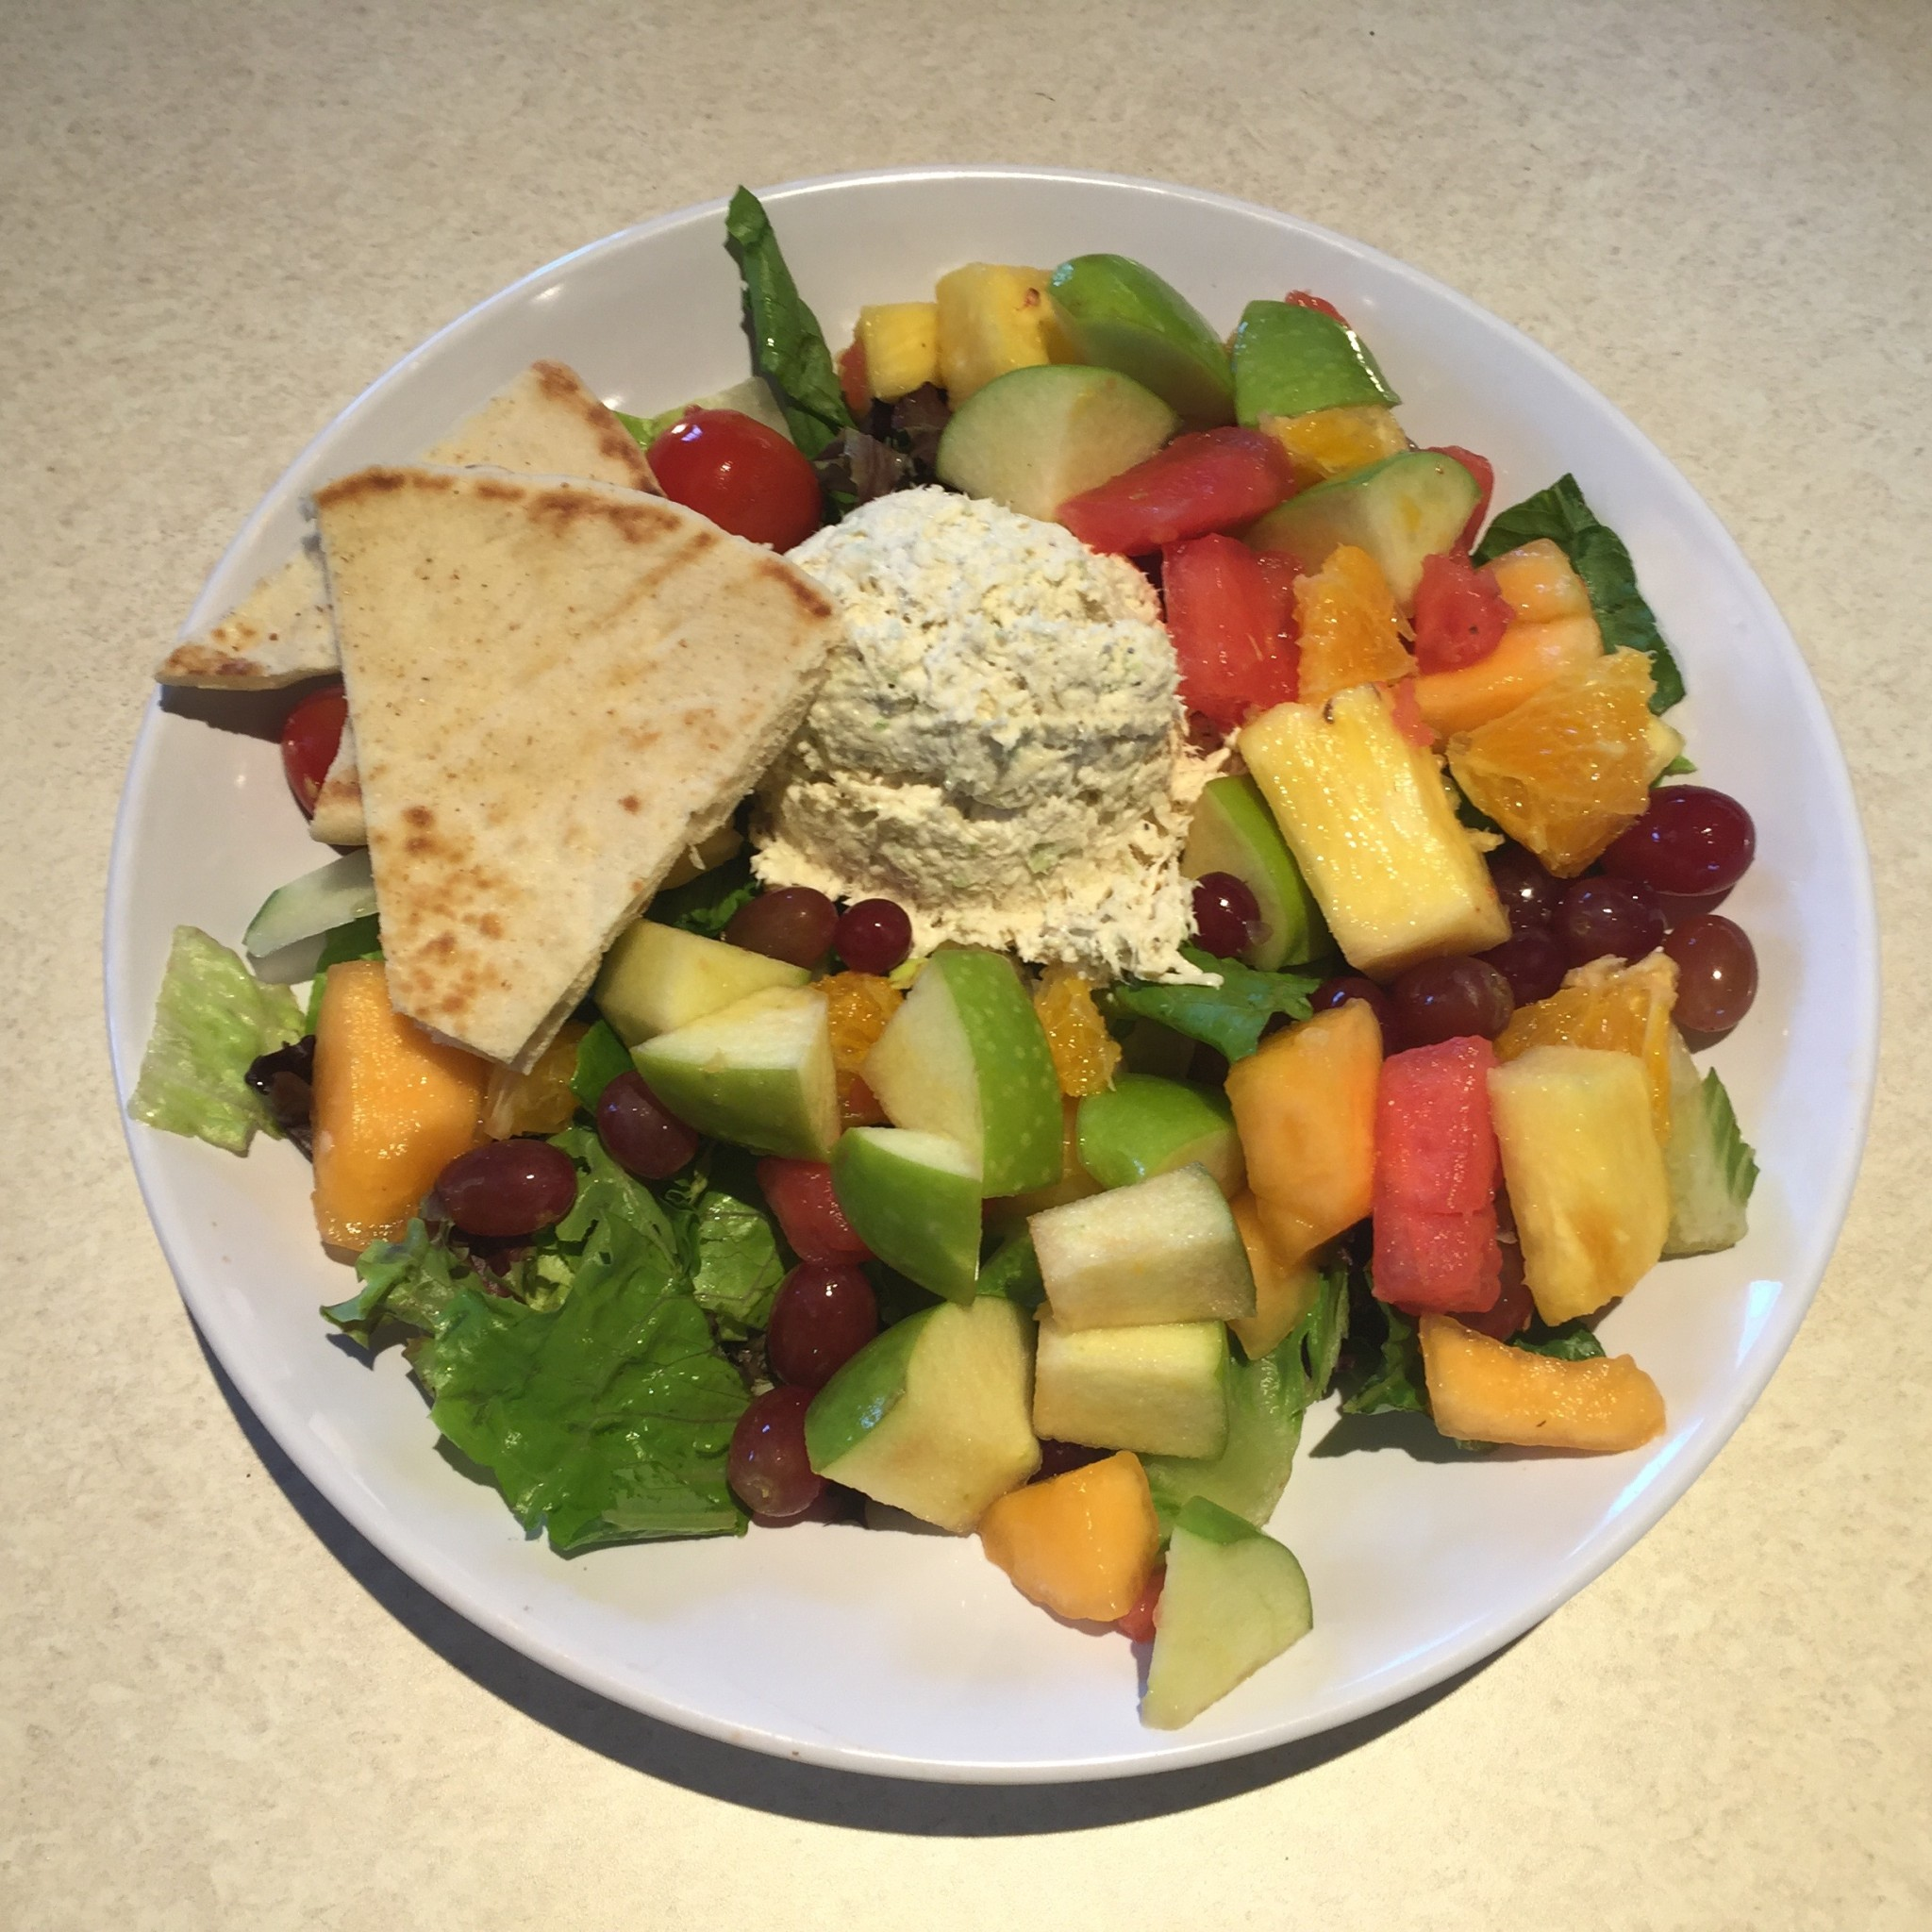 Zoës Kitchen – Chicken Salad and Fruit